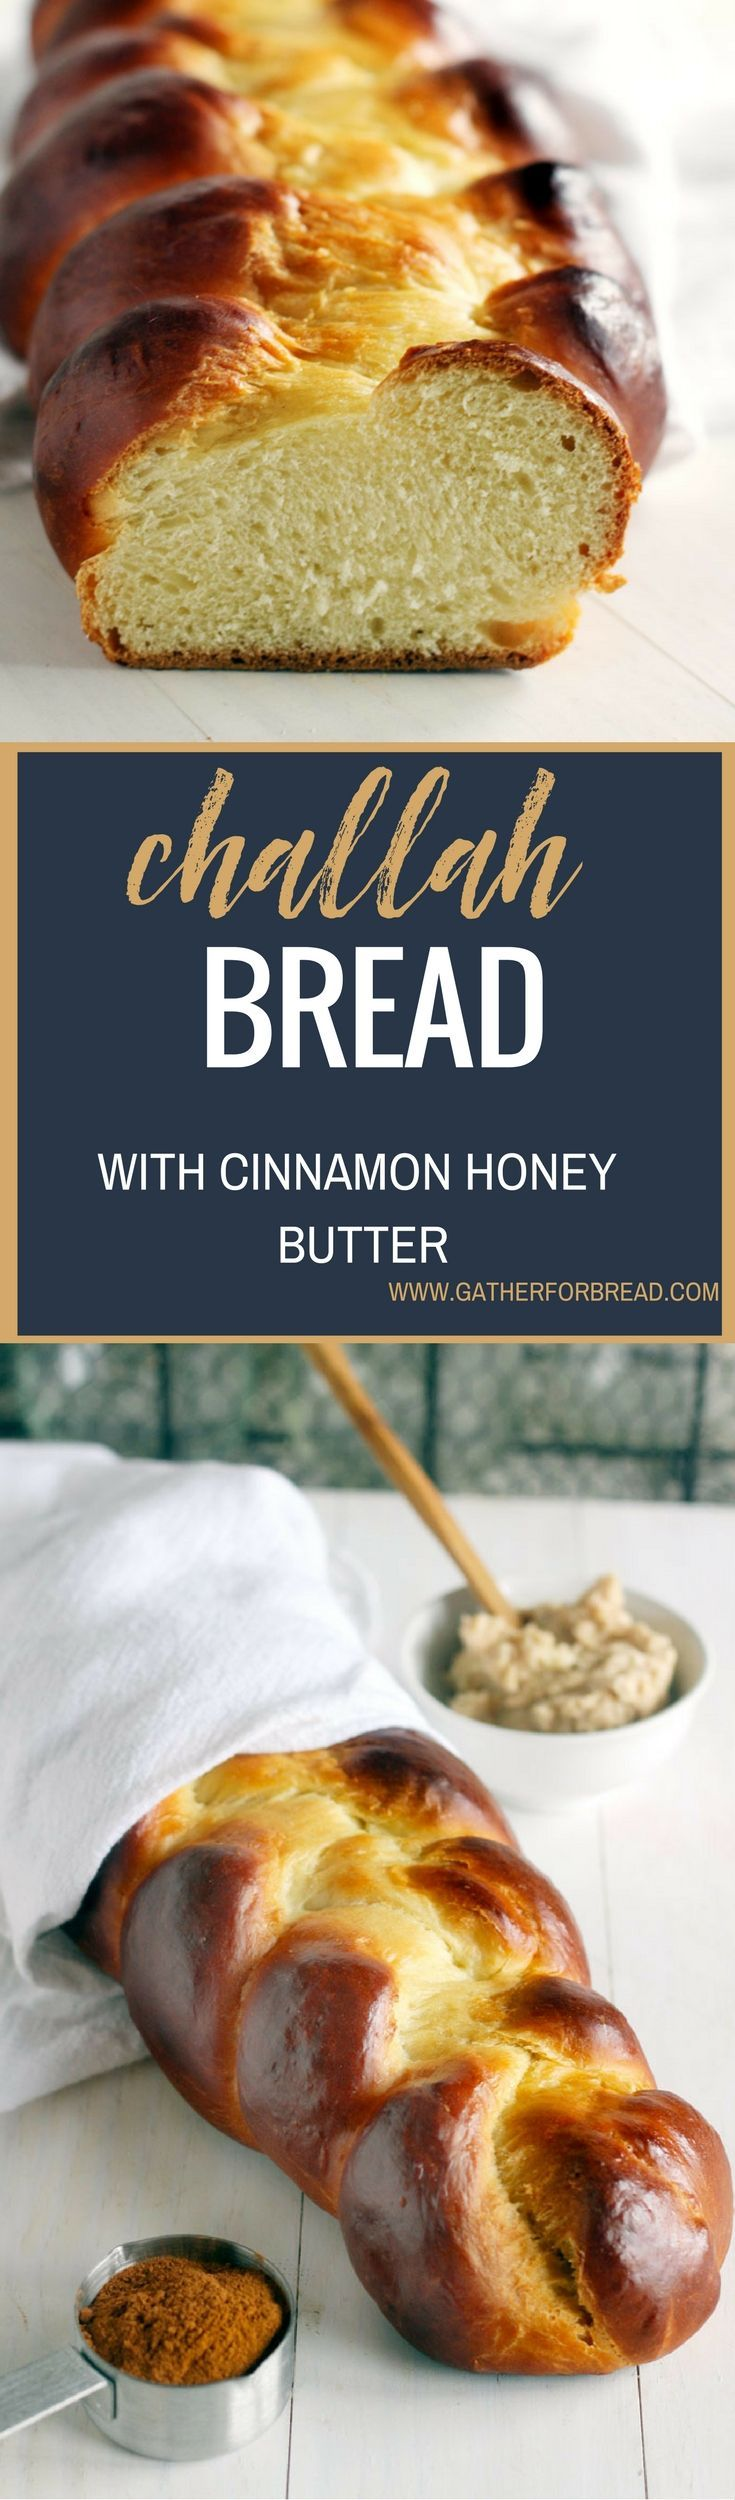 Challah with Cinnamon Honey Butter  Traditional Jewish bread. Beautiful braided bread made with eggs. Perfect for Easter serves up wonderfully with cinnamon honey butter.